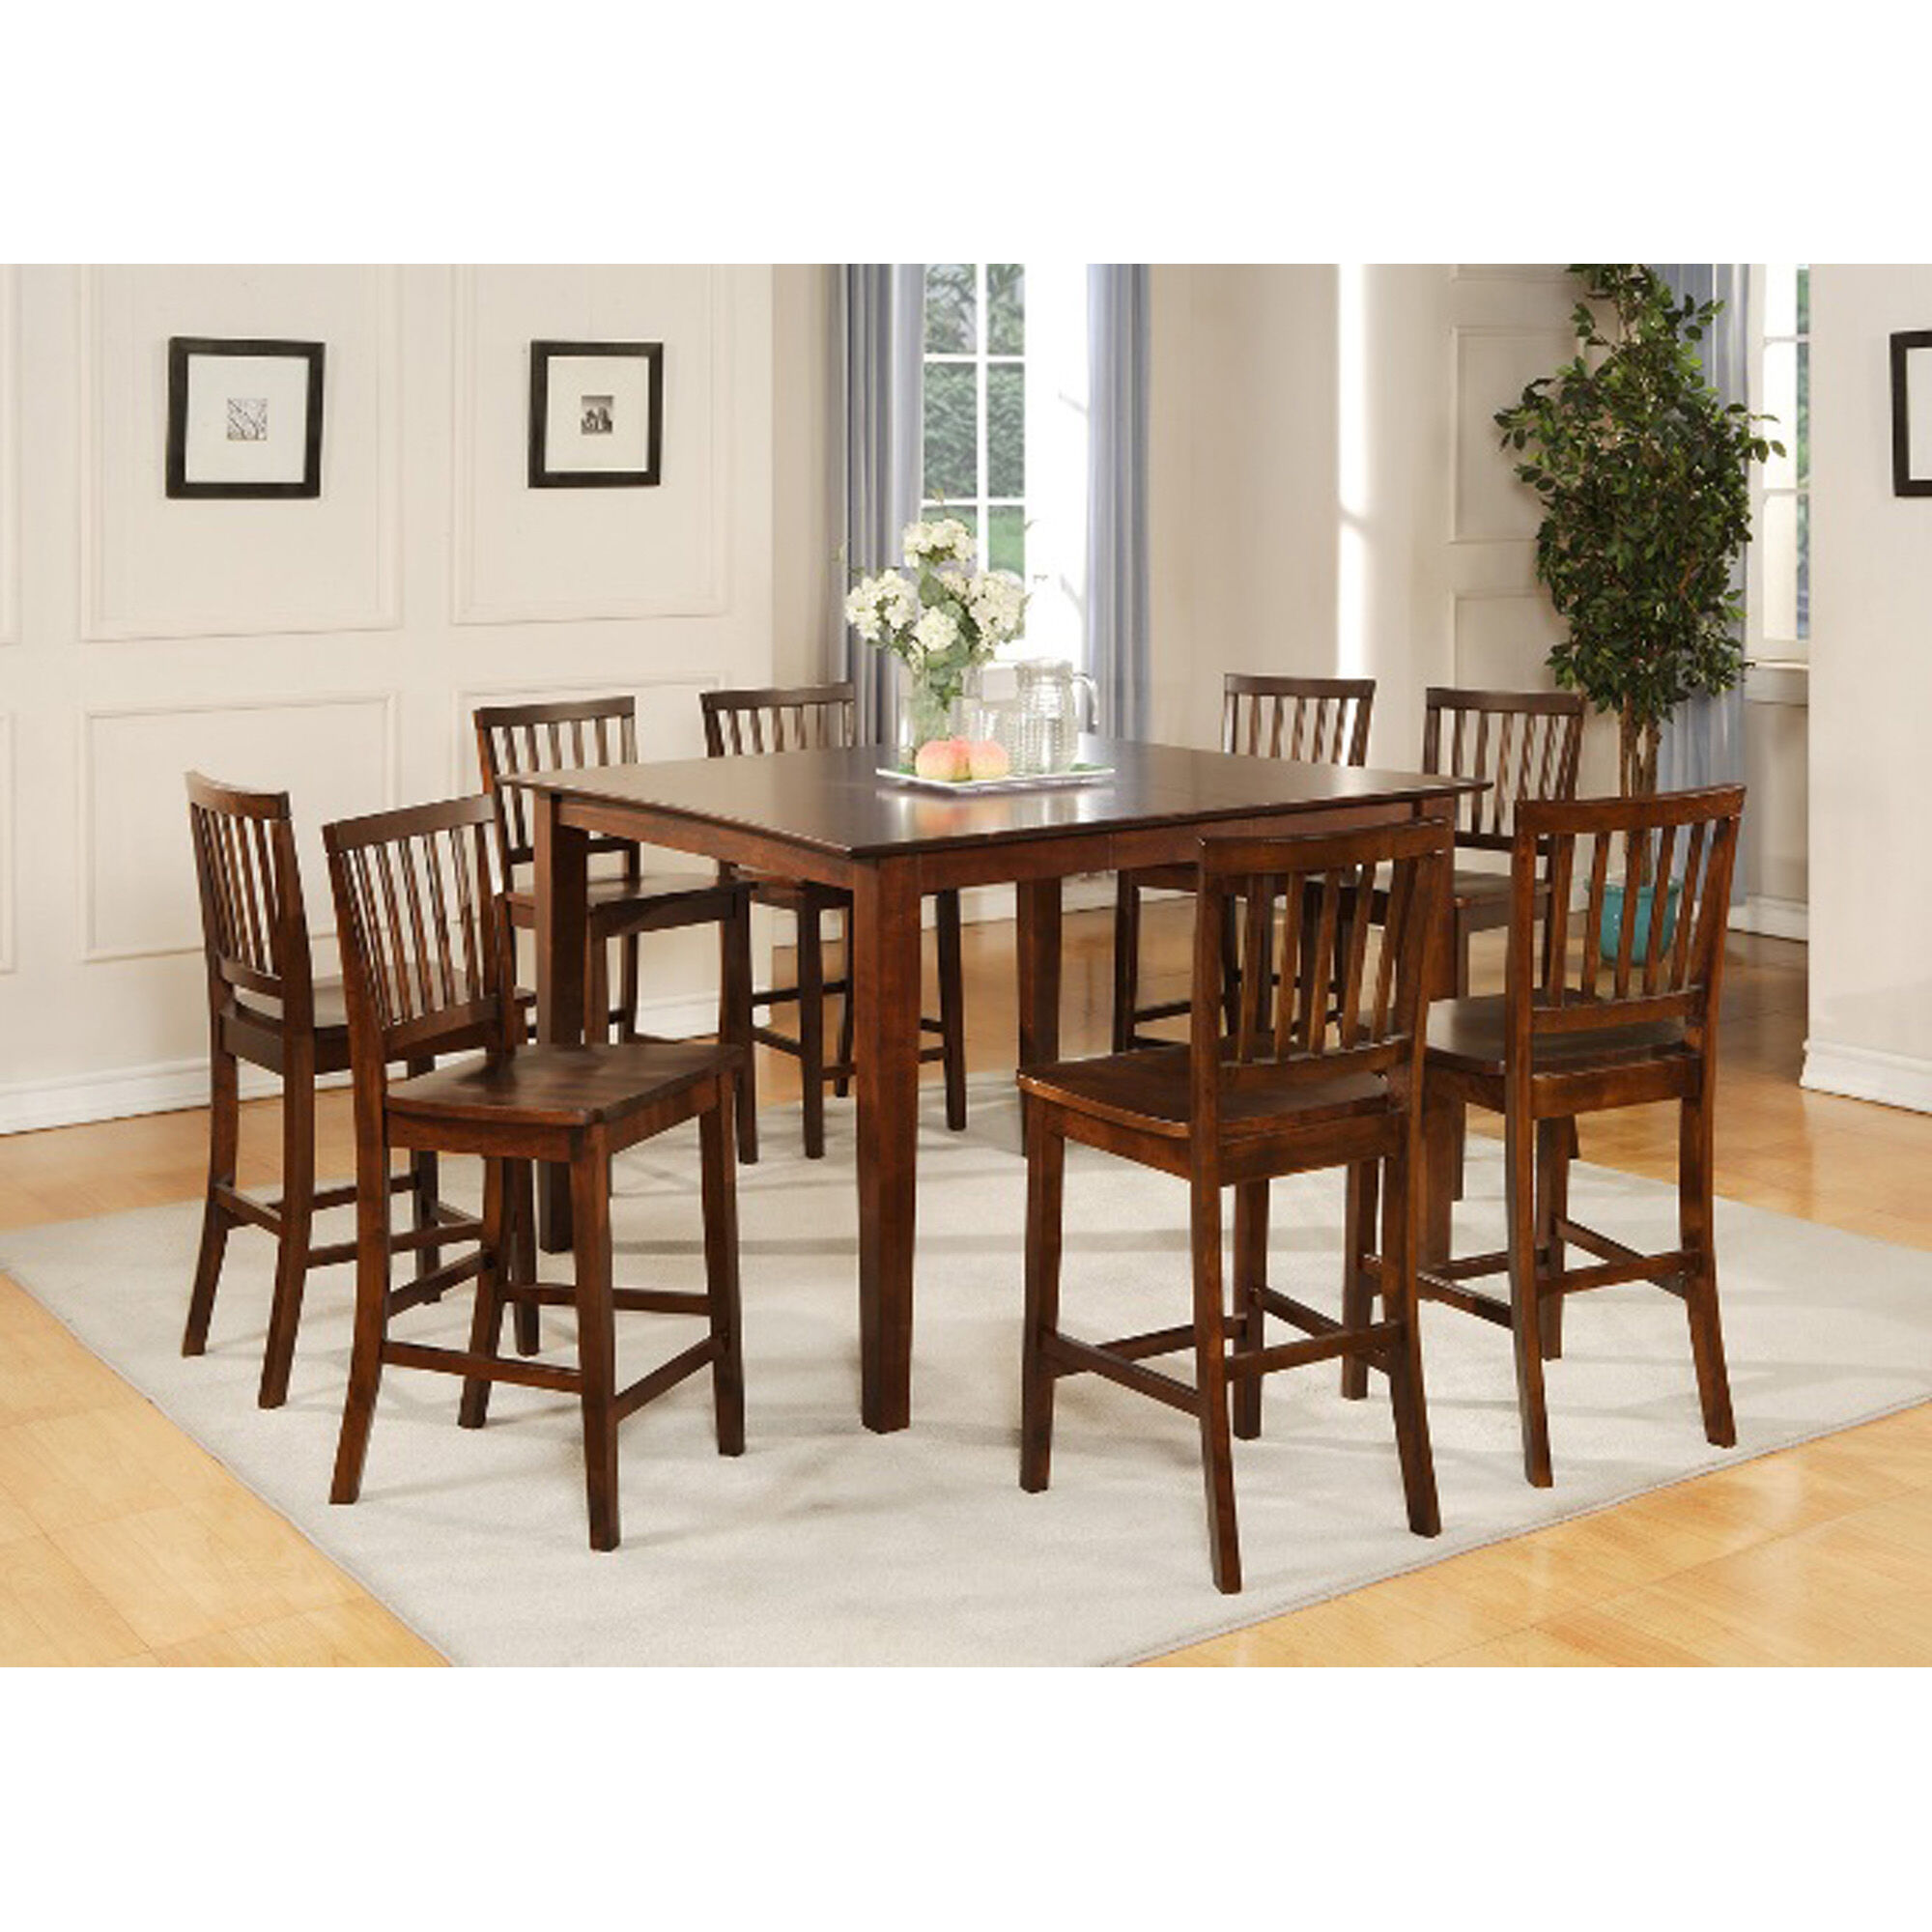 Steve Silver Dining Room 9 Piece Branson Counter Height